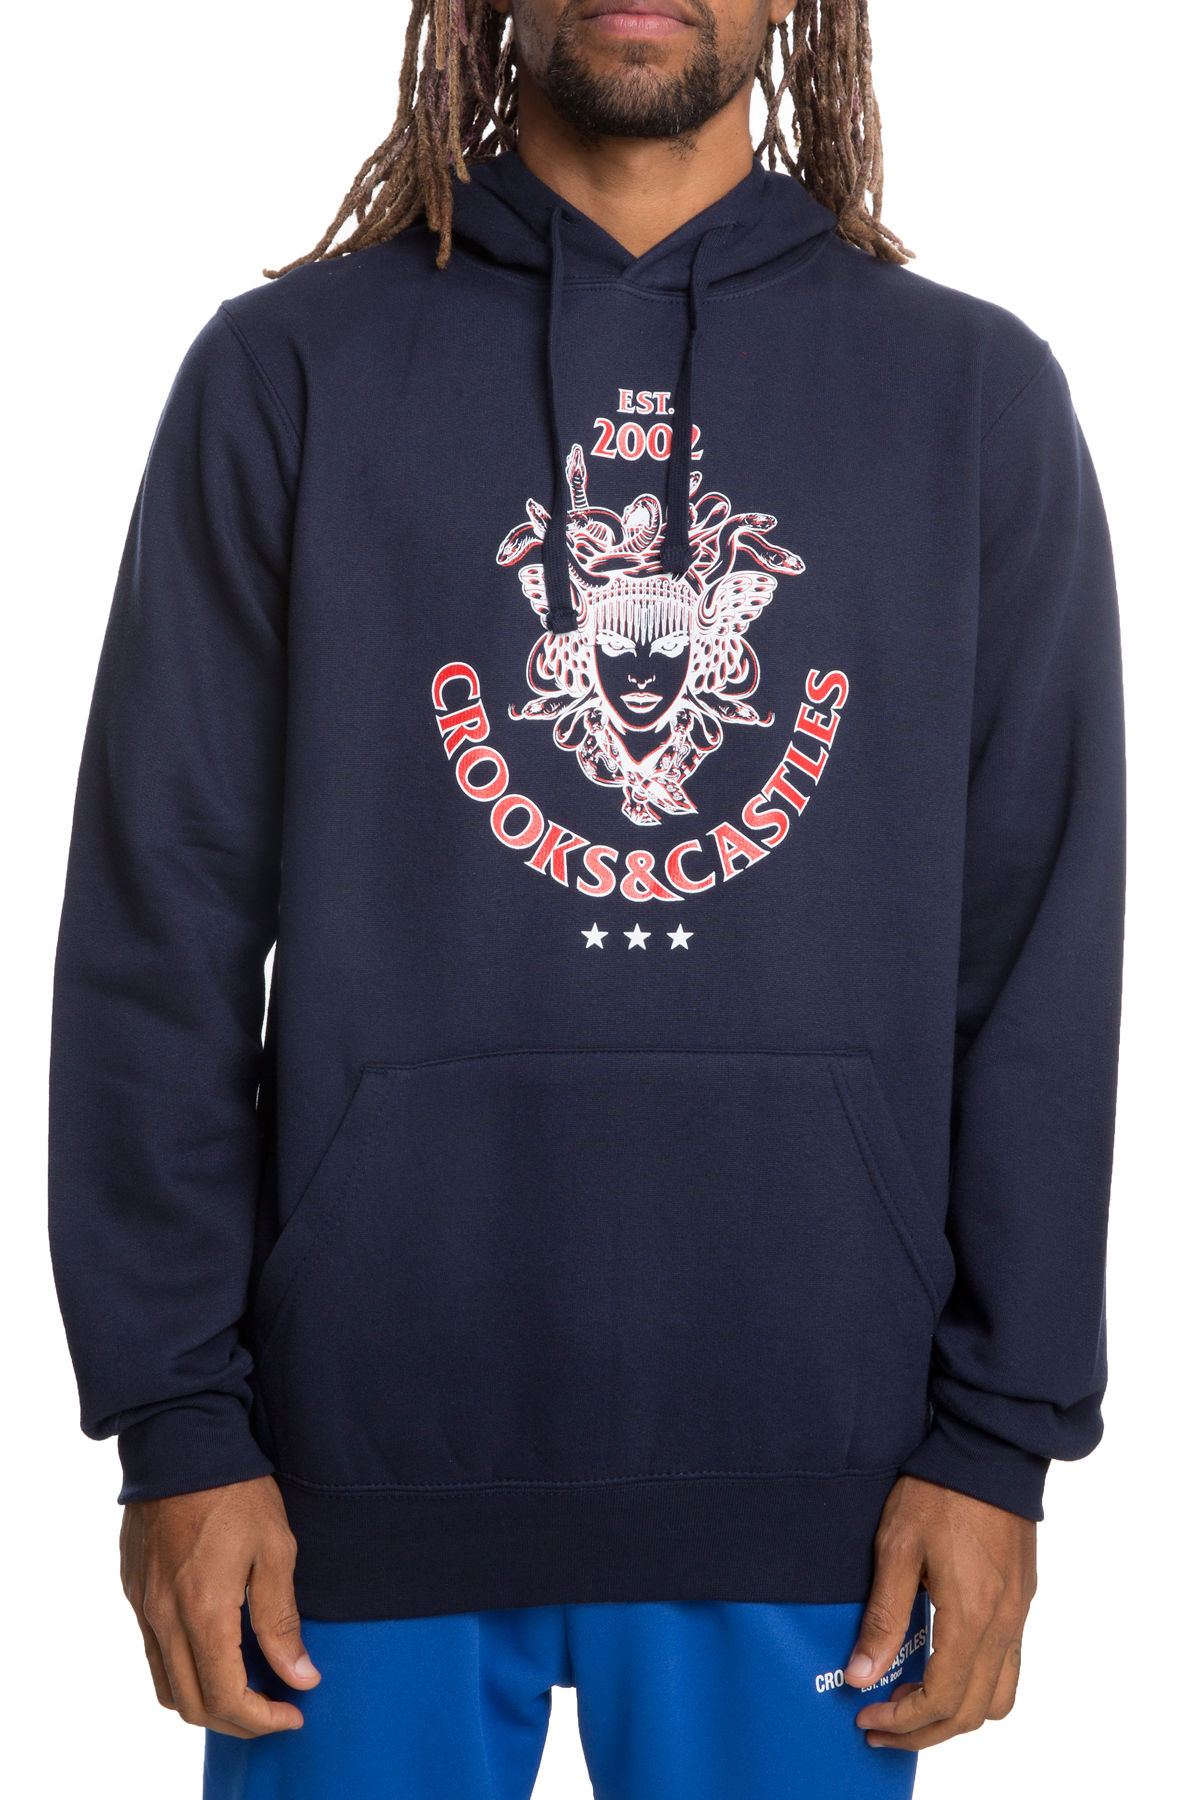 Image of The Unmasked Medusa Pullover Hoodie in Navy